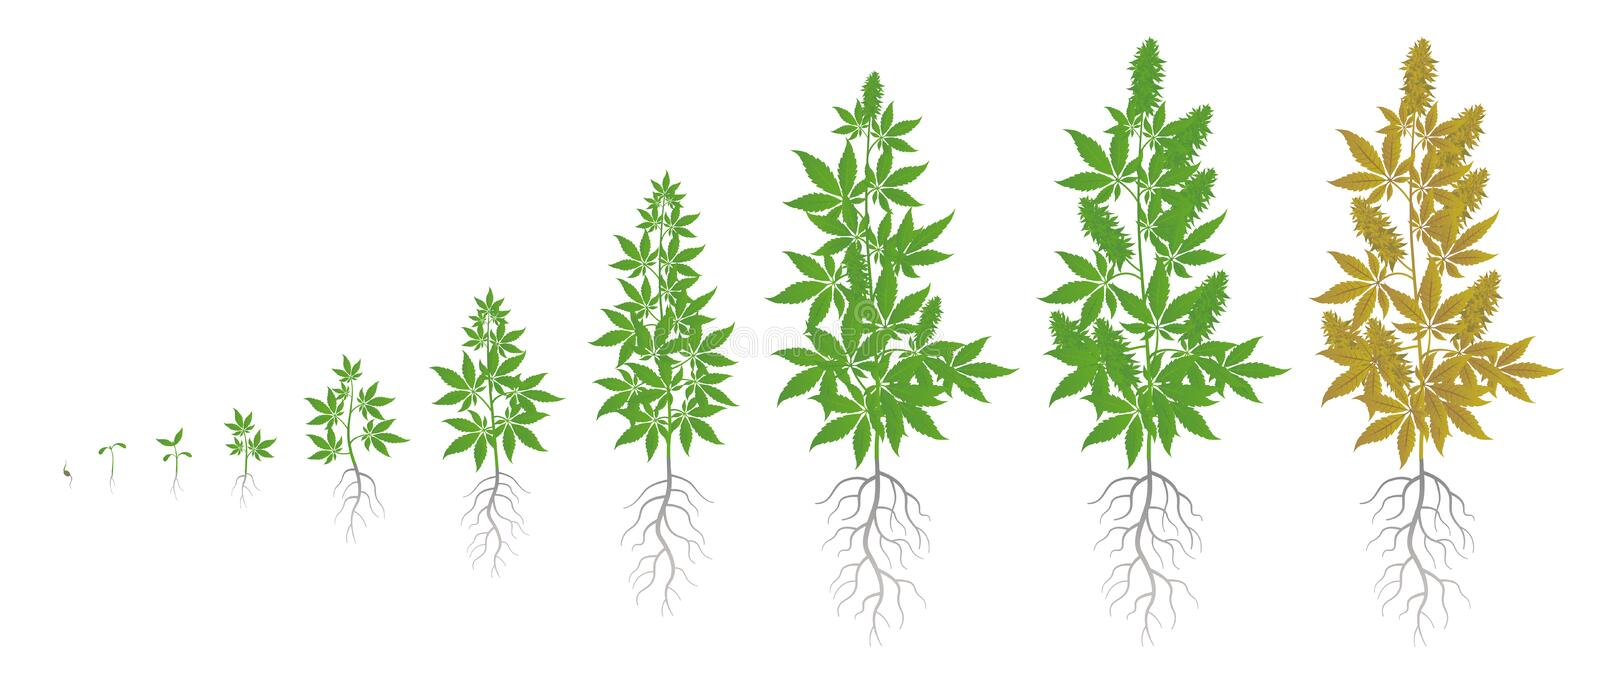 The Growth Cycle of hemp plant. Marijuana phases set. Cannabis indica ripening period. The life stages. Weed Growing. Isolated infographic vector illustration royalty free illustration